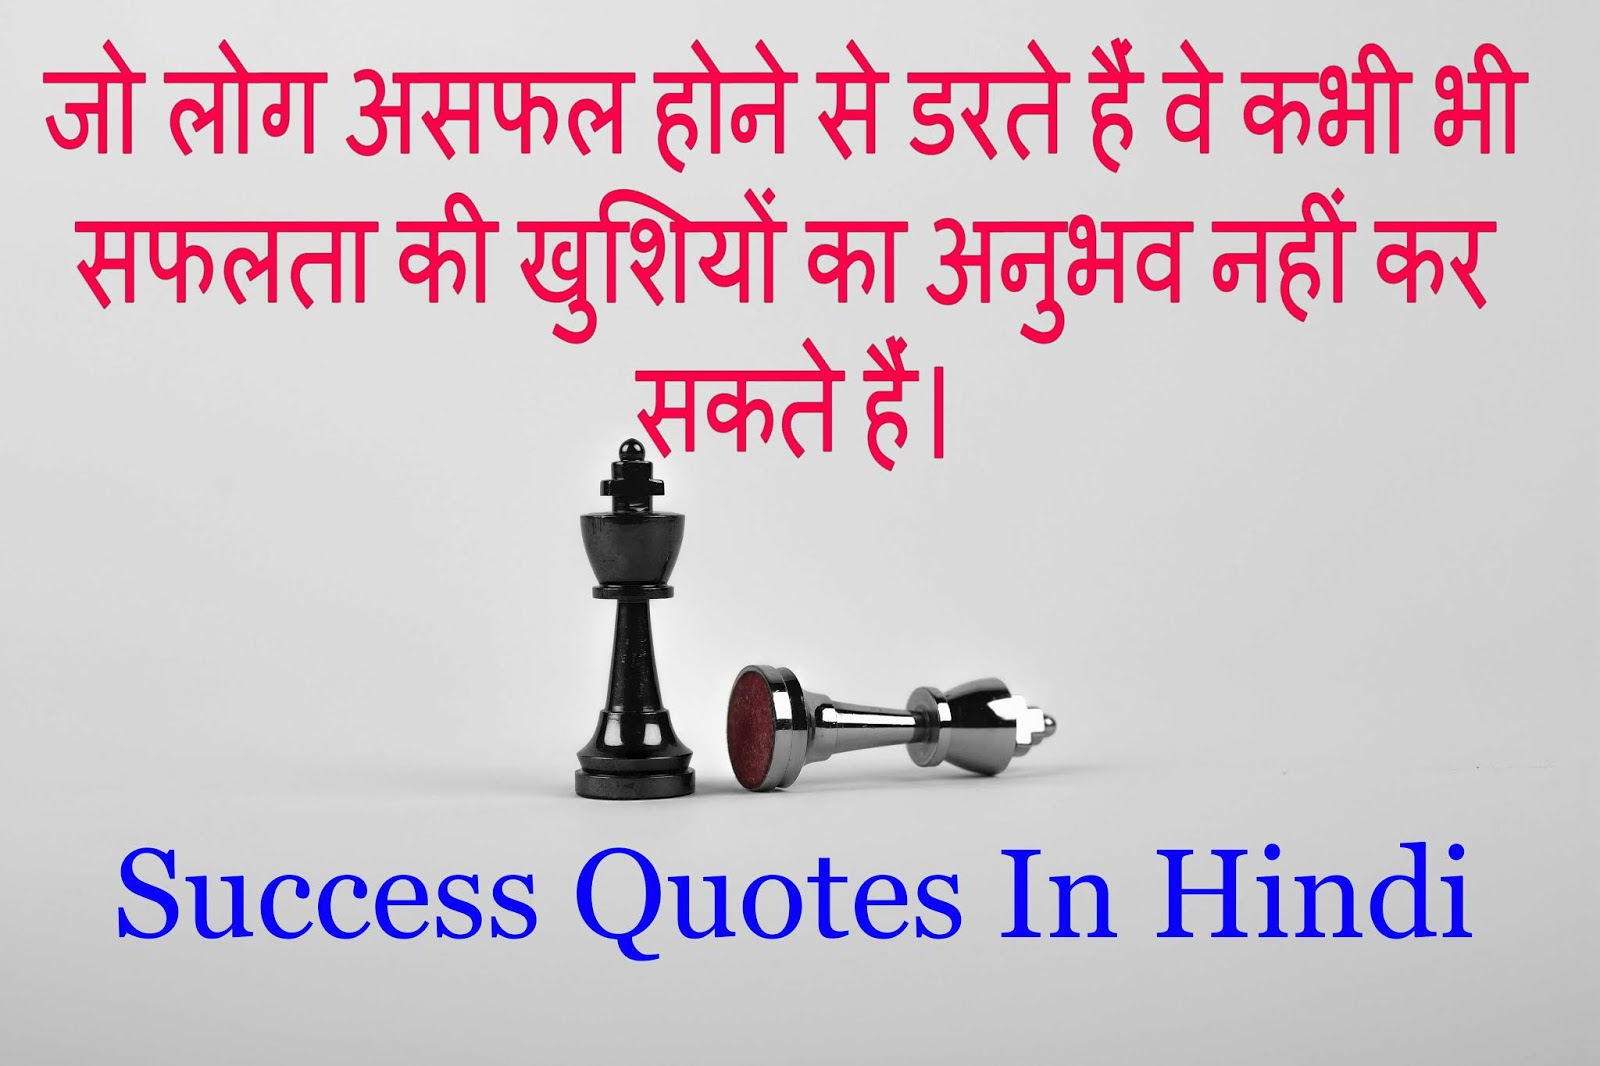 Motivational quotes images for success in hindi